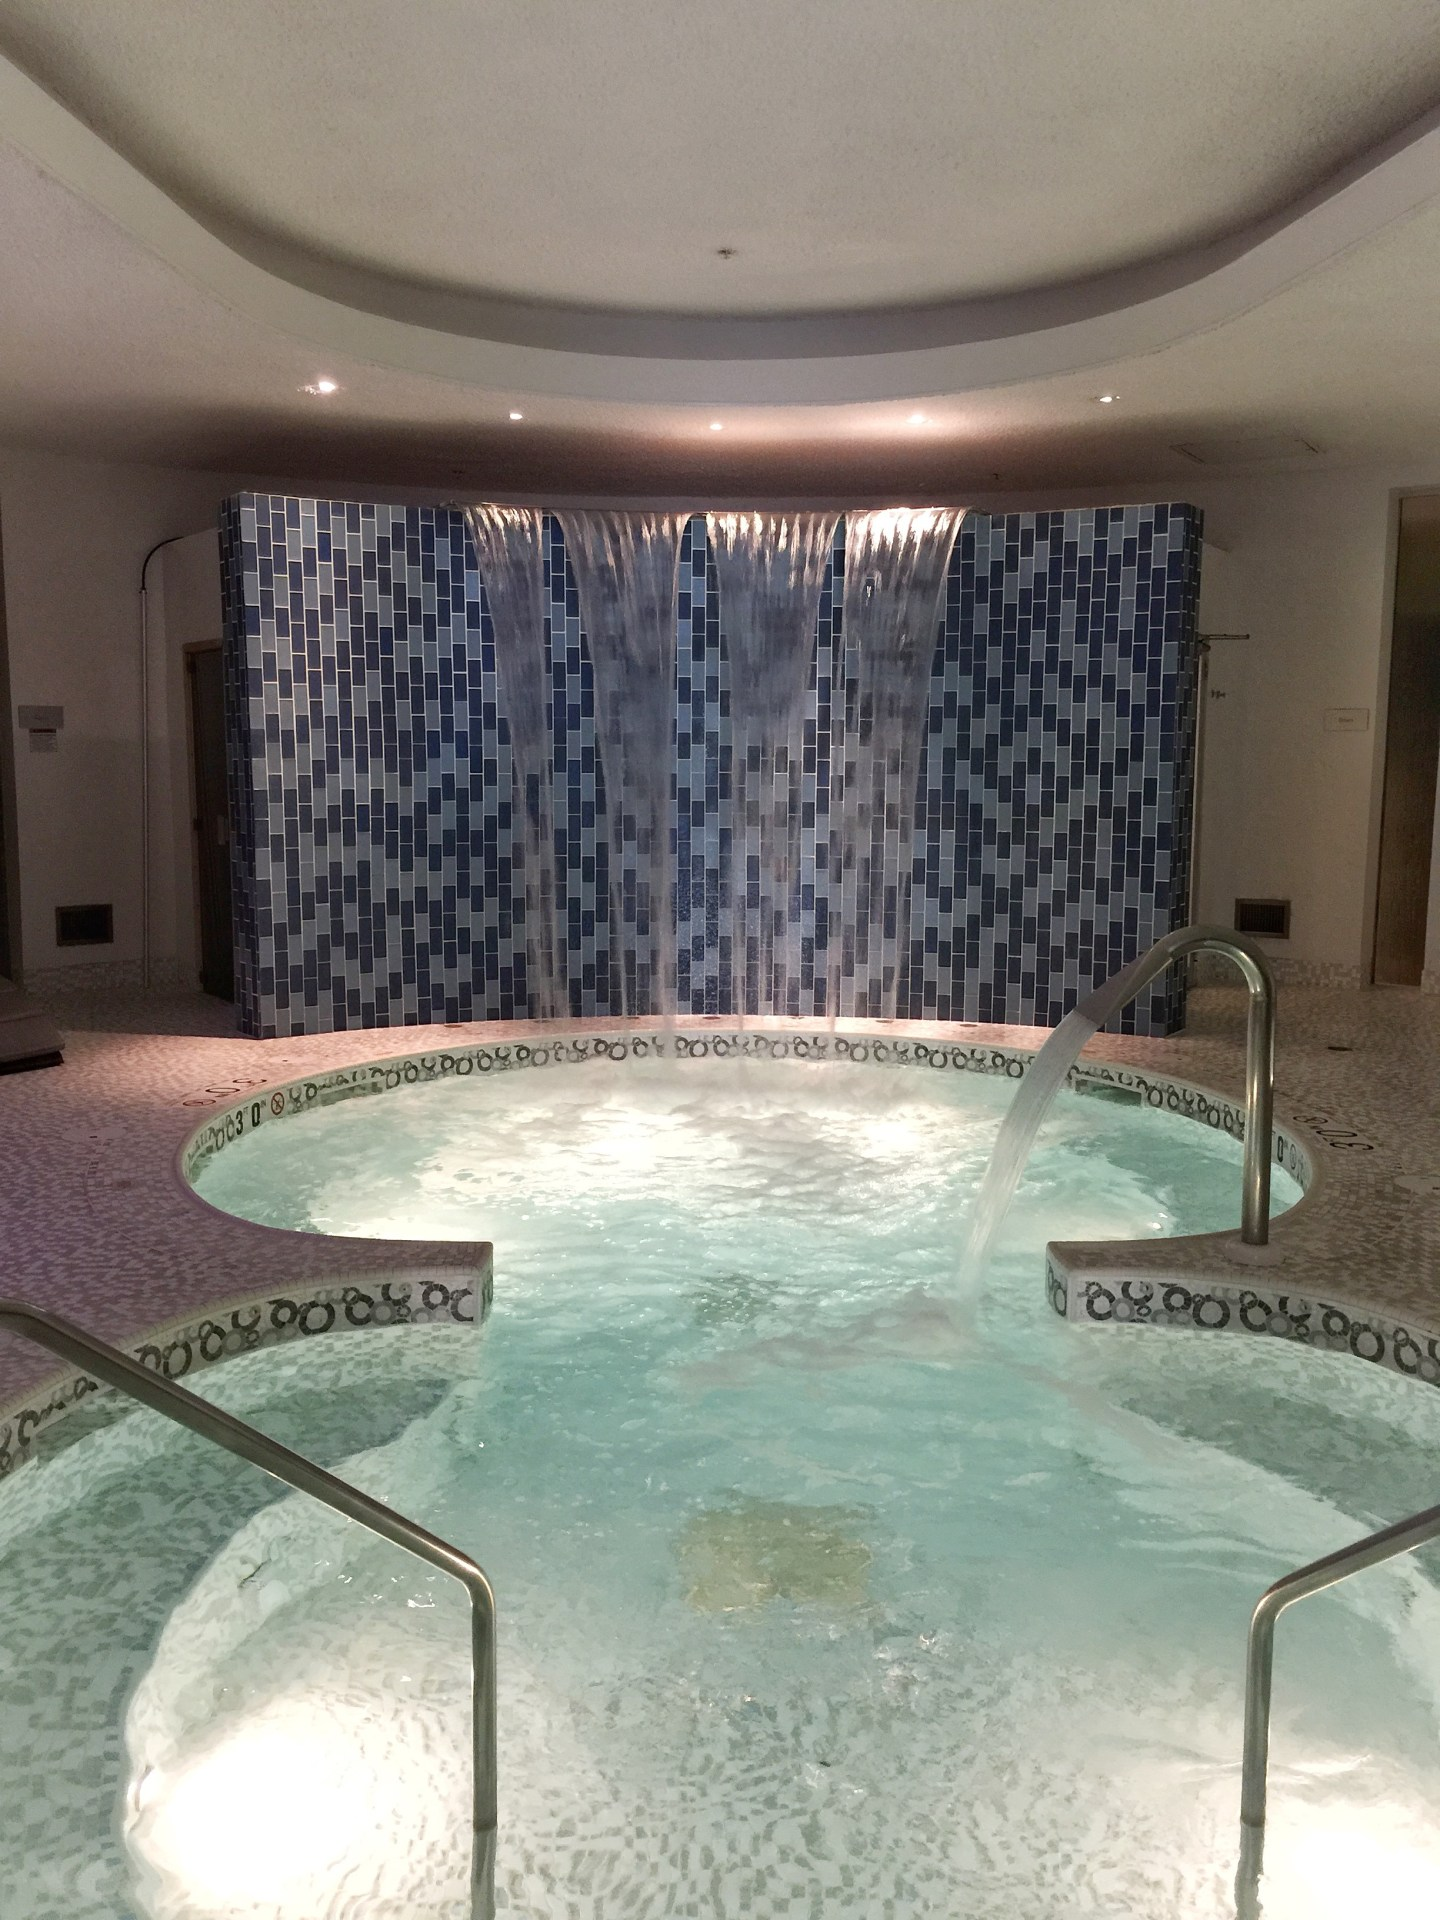 Spa Day at Kohler Waters Spa